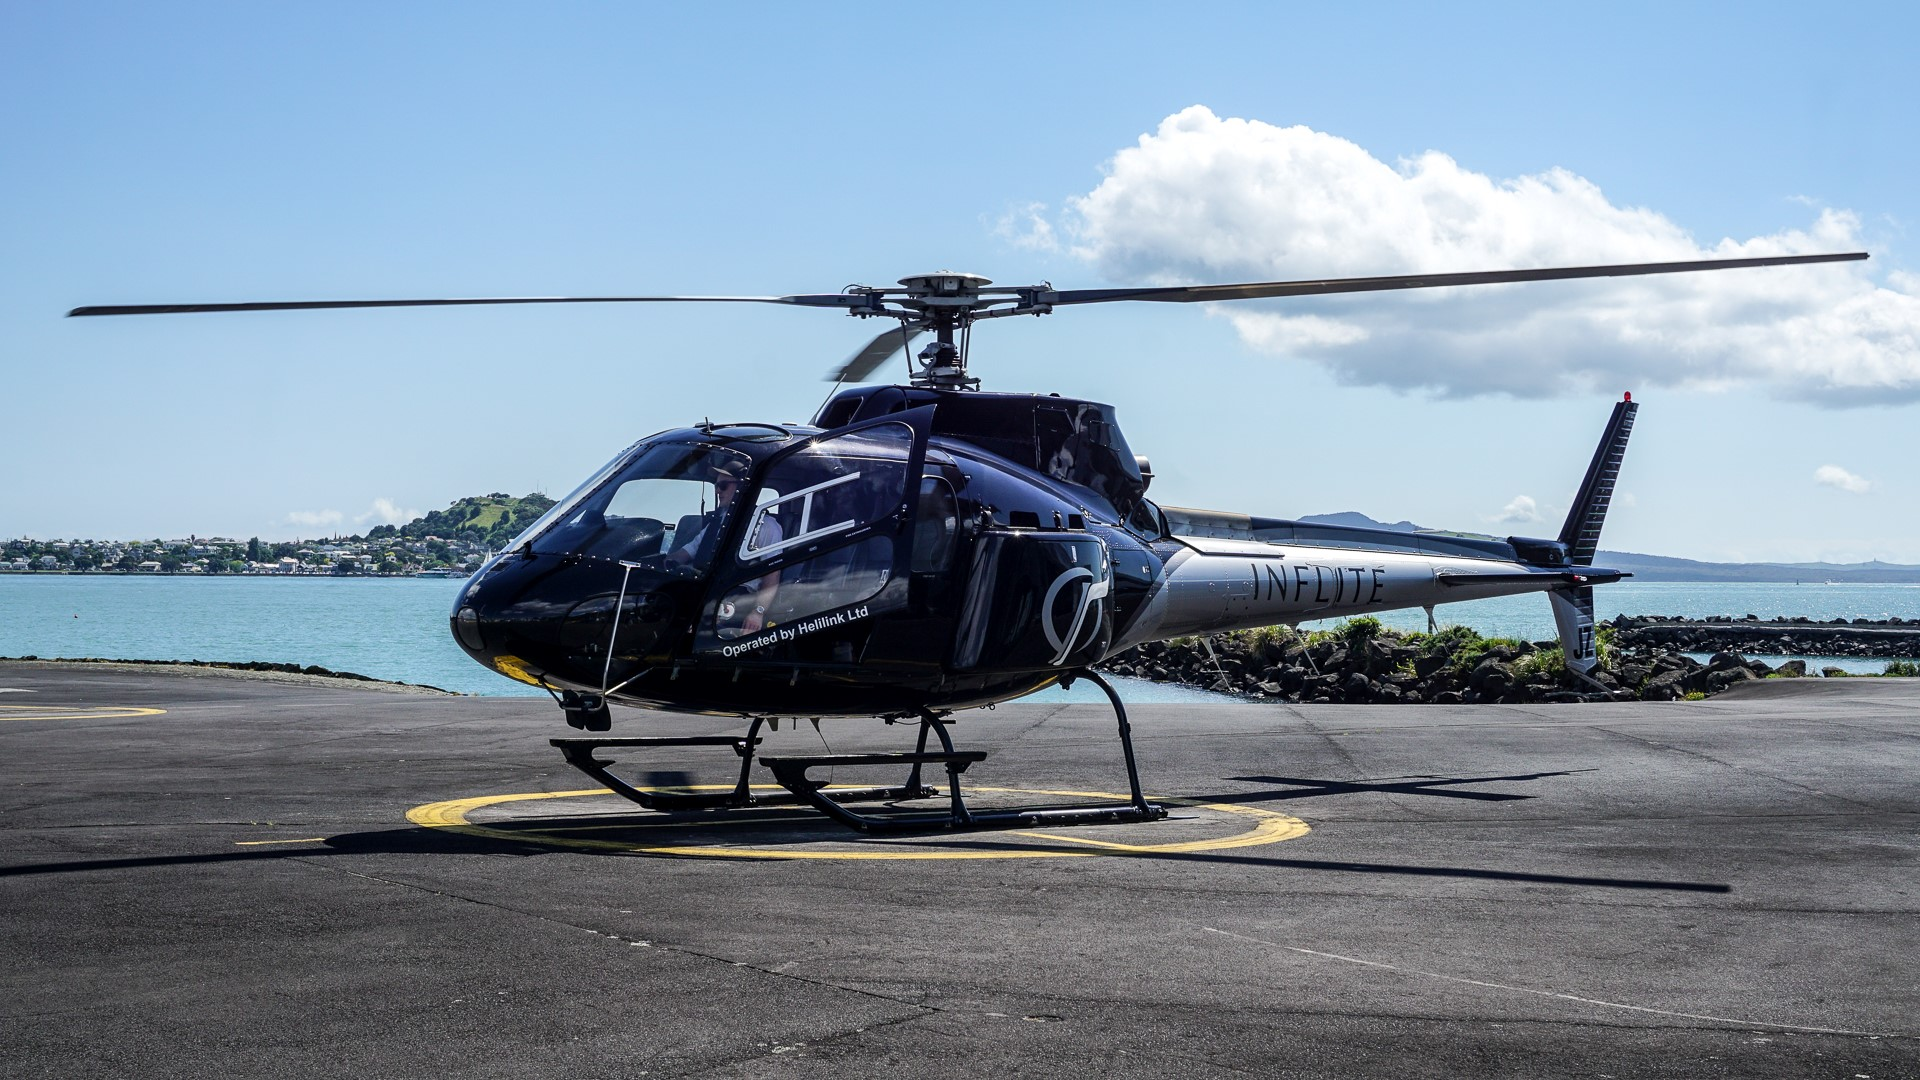 File:AS350 Helicopter by INFLITE.jpg - Wikimedia Commons